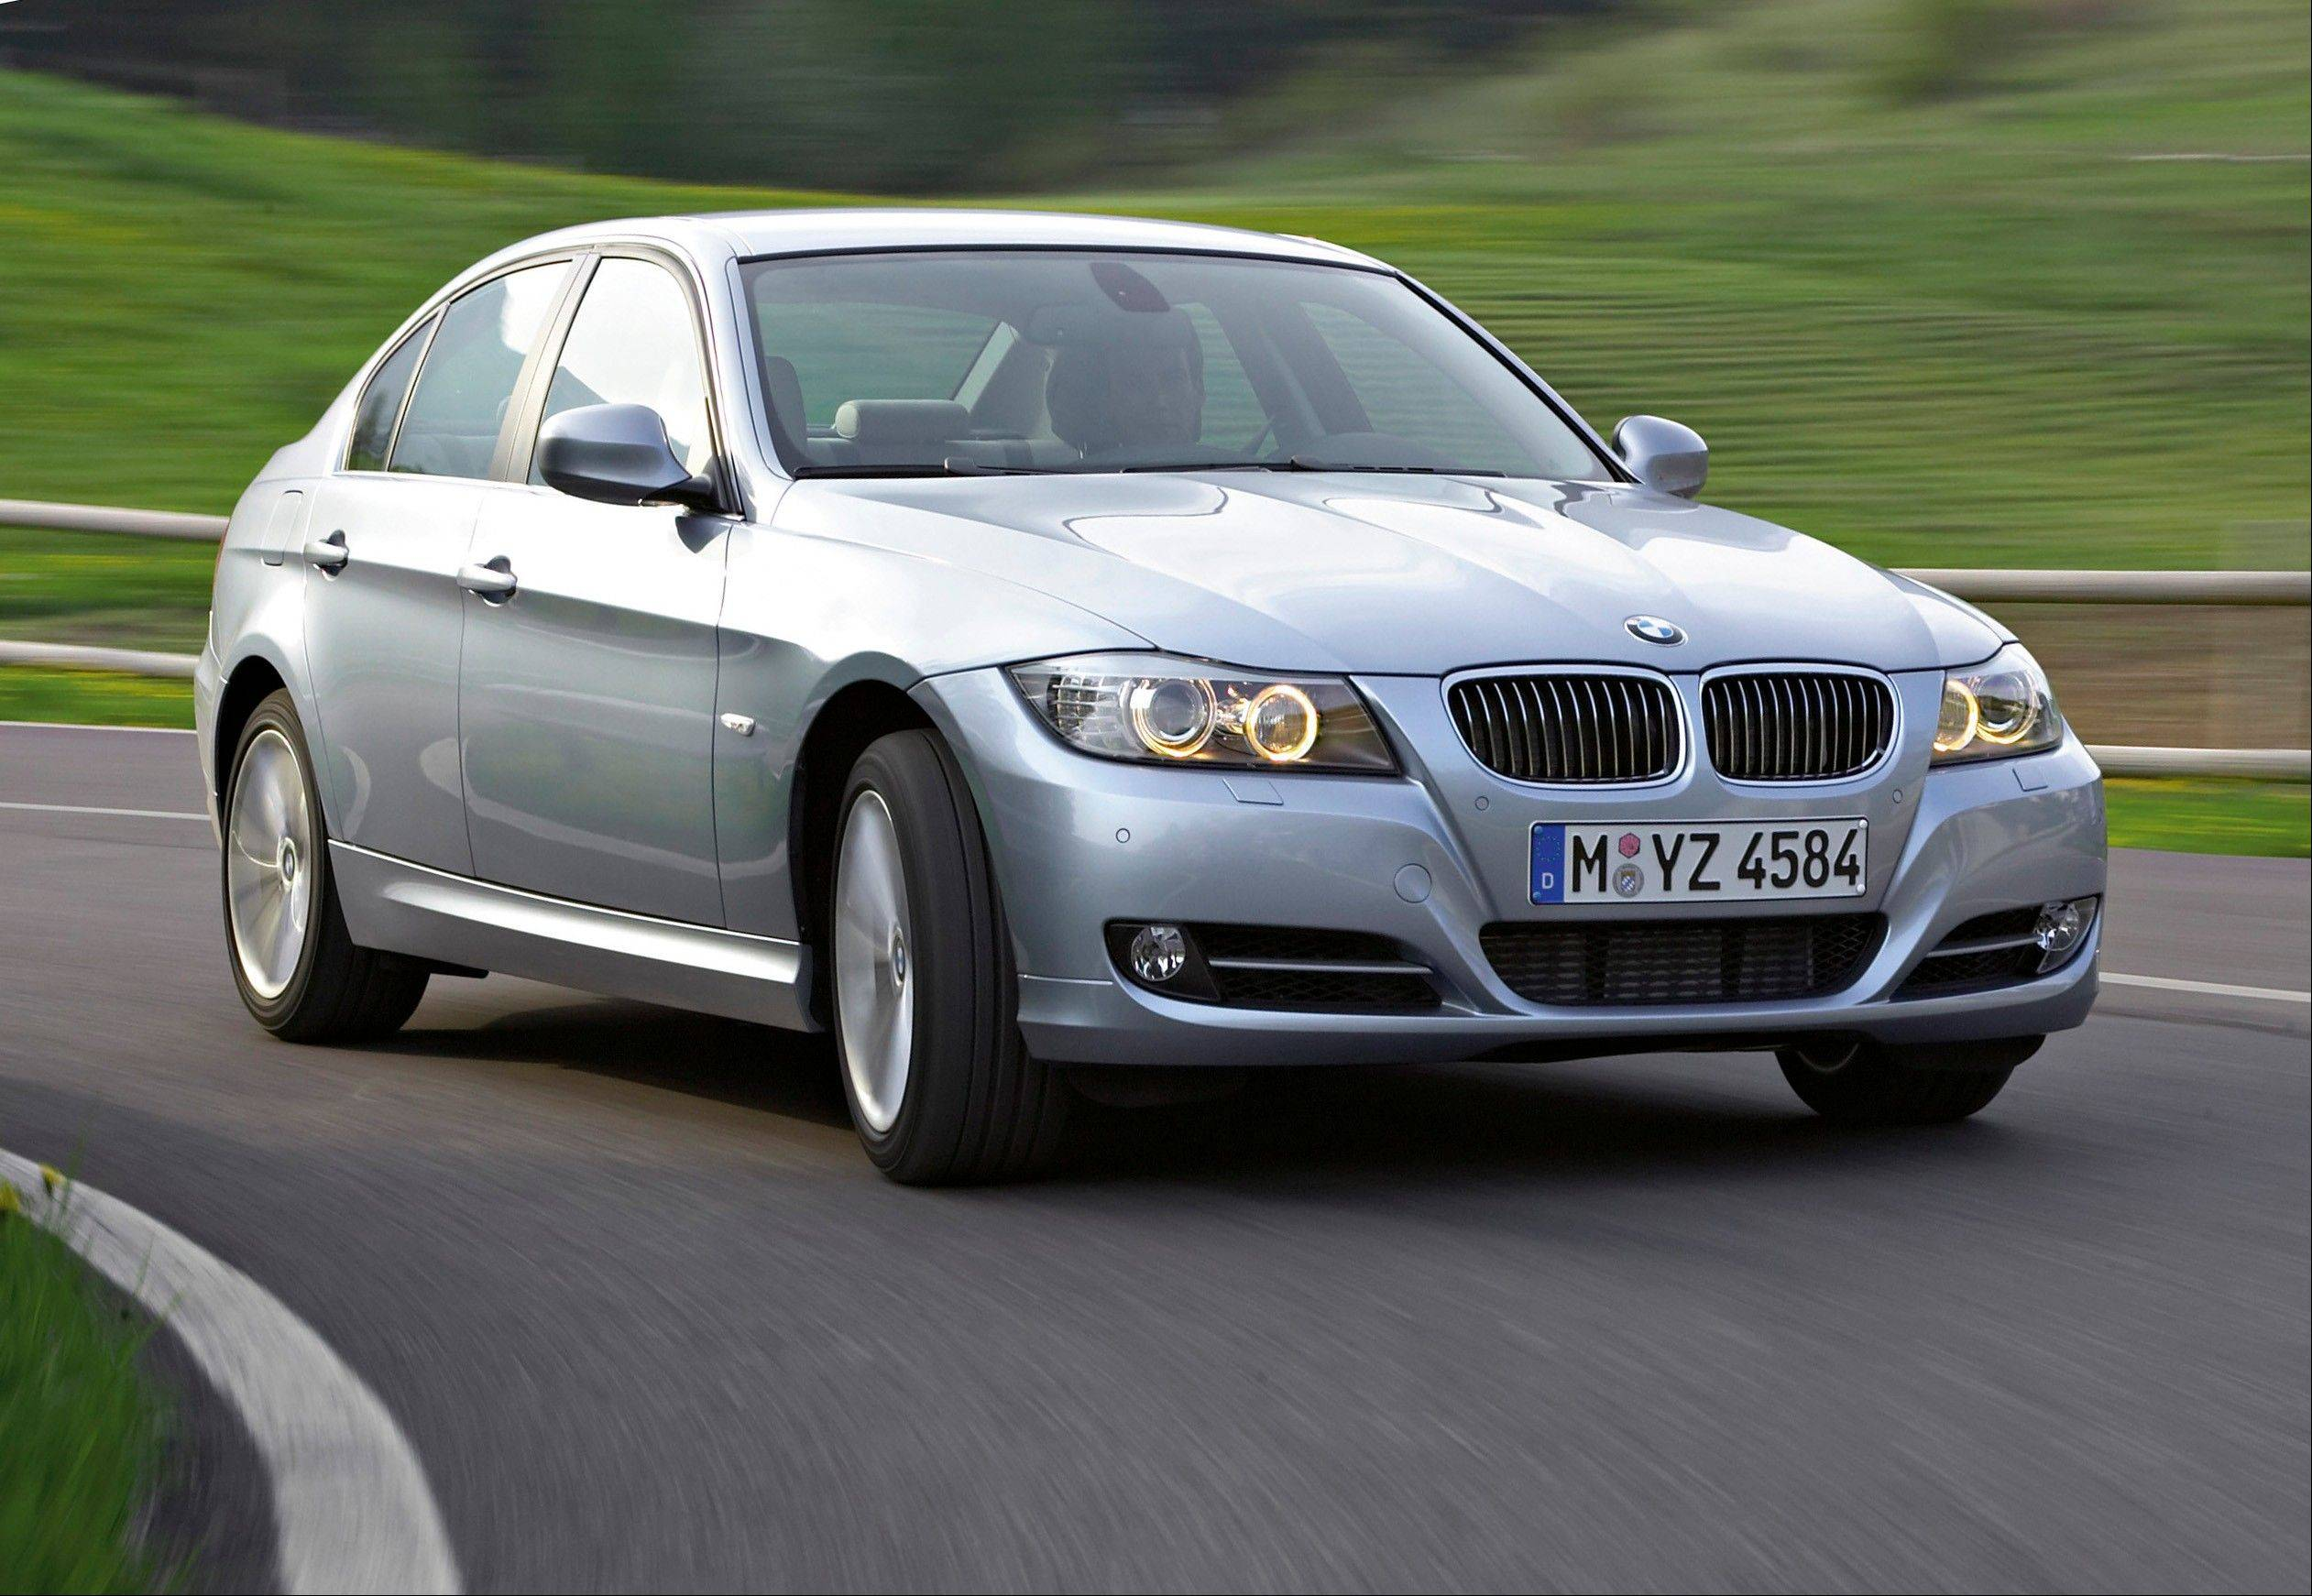 Associated Press/BMW AGThe 2009 BMW 3-Series sedan.